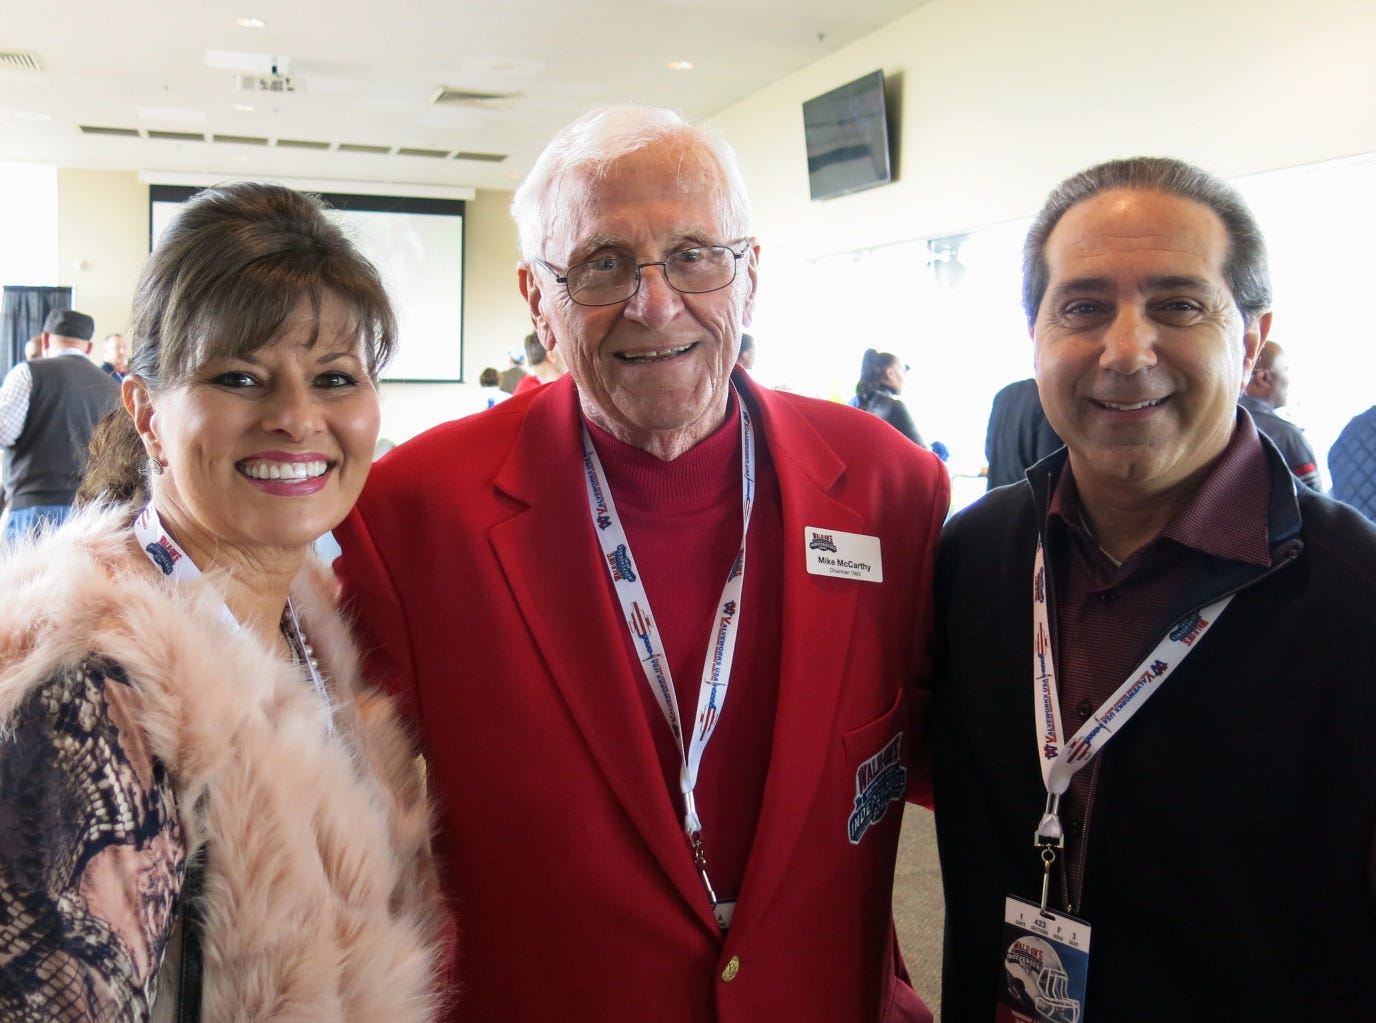 VIPs gathered at the Club Level of Independence Stadium for the Walk-On's Independence Bowl on Dec. 27, 2018.